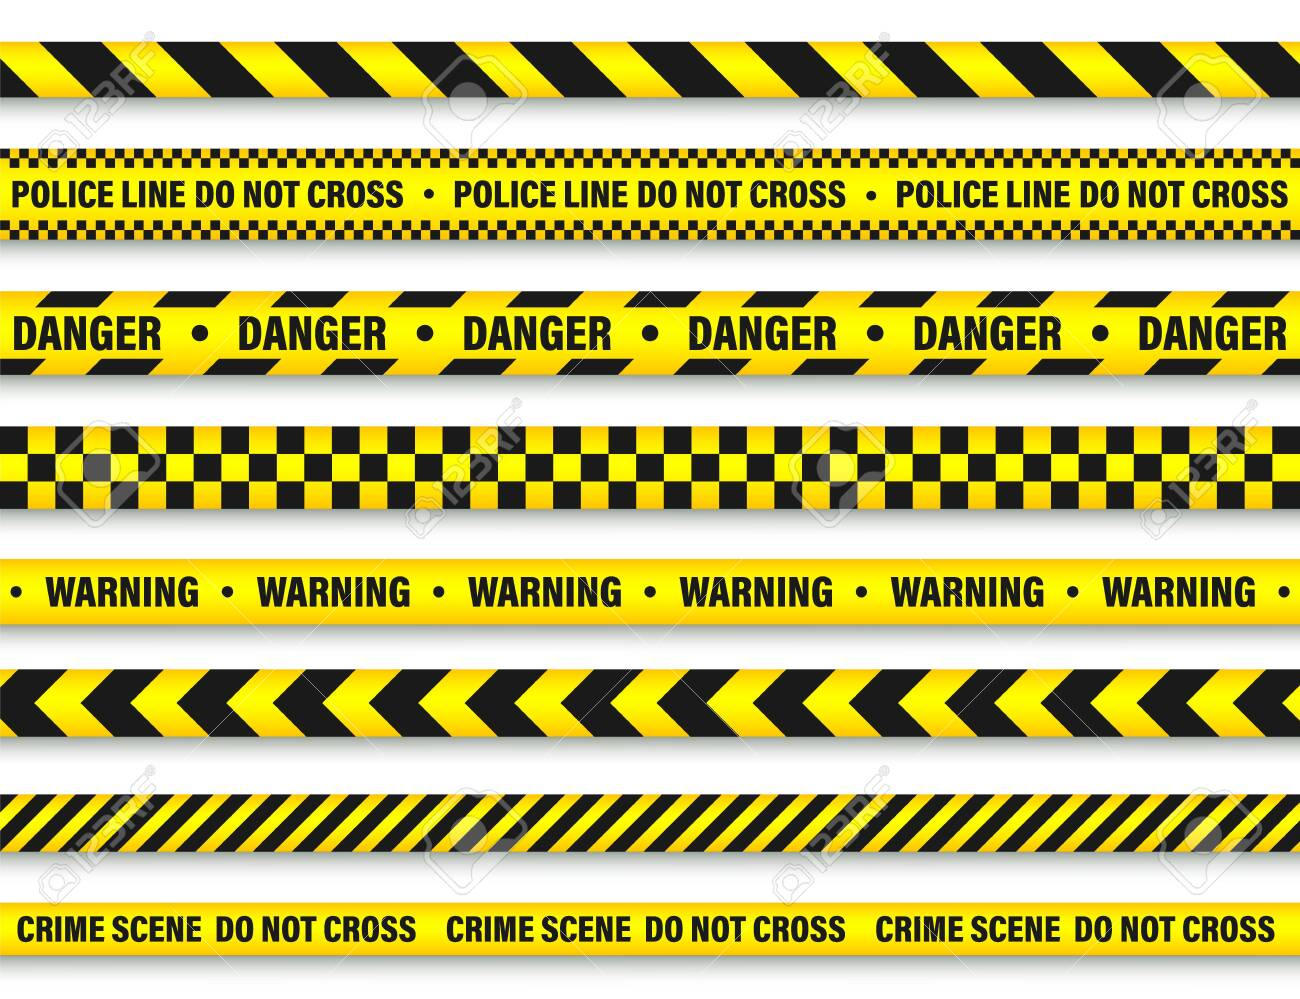 Yellow And Black Barricade Construction Tape. - 129392388